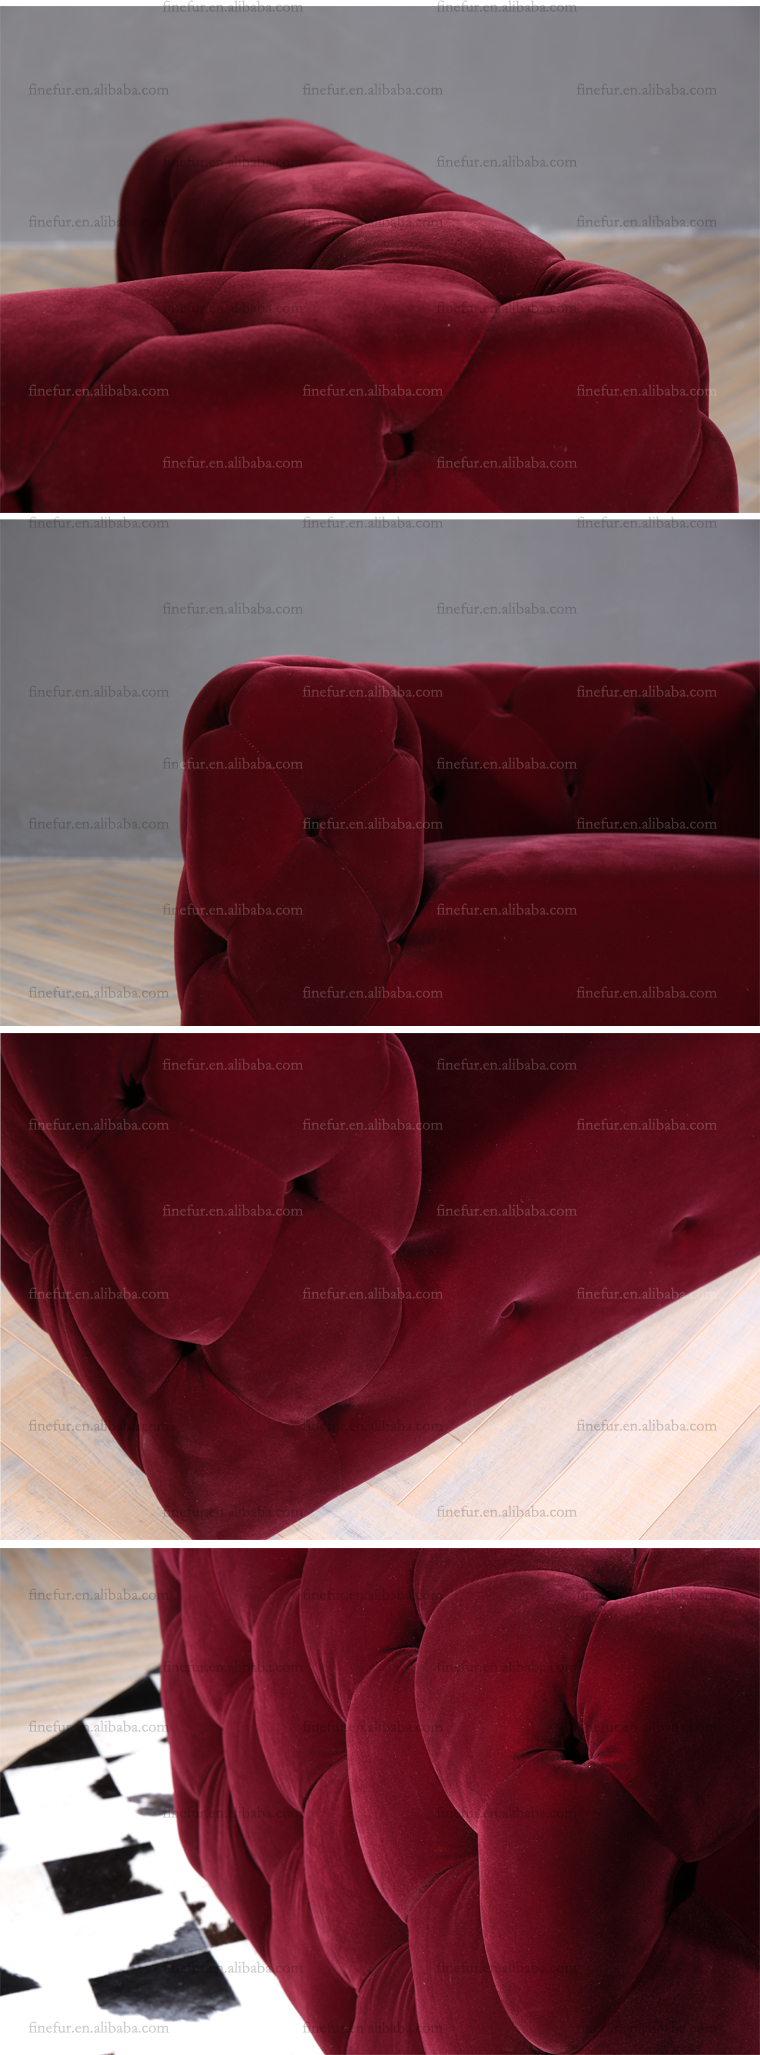 Luxury Furniture One Seat Red Velvet Tufted Sofa